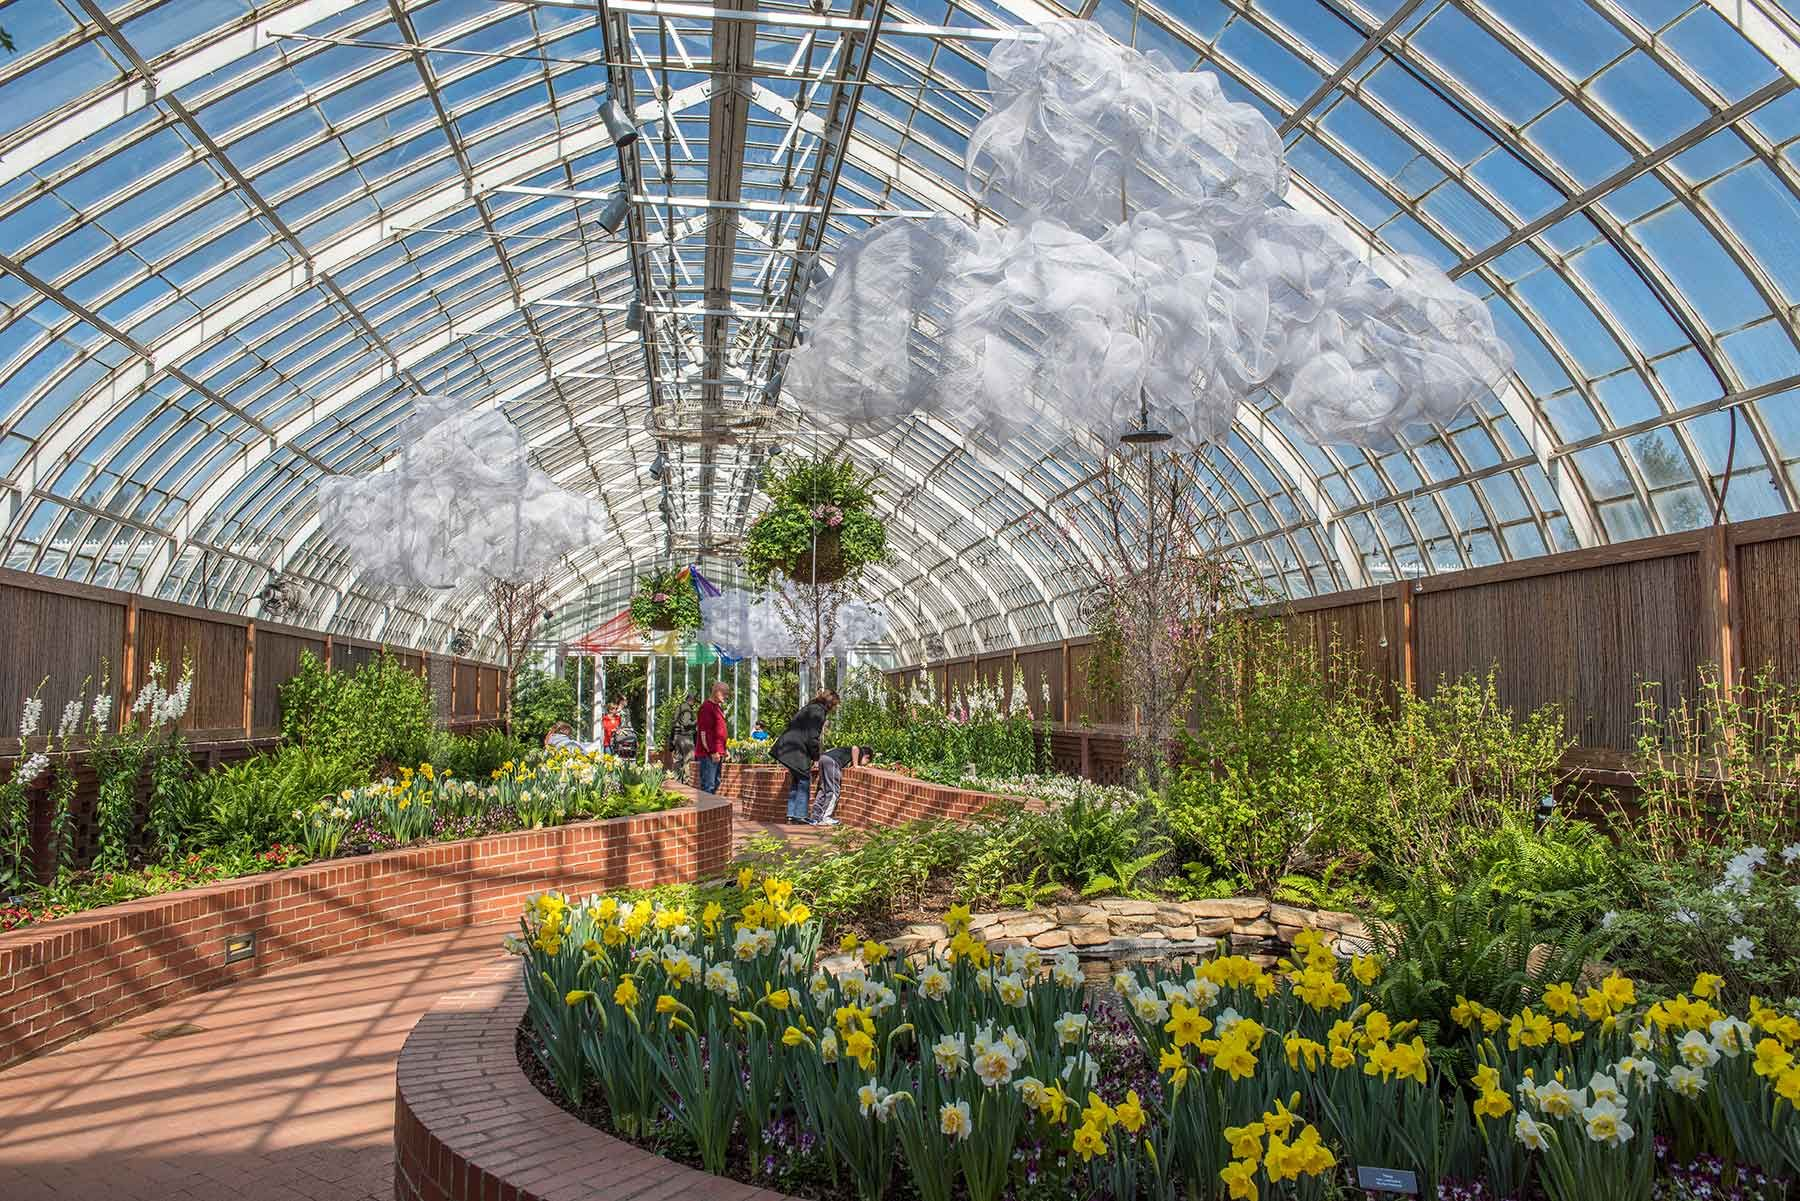 Spring flower show 2015 phipps conservatory and botanical gardens spring flower show 2015 phipps conservatory and botanical gardens pittsburgh pa mightylinksfo